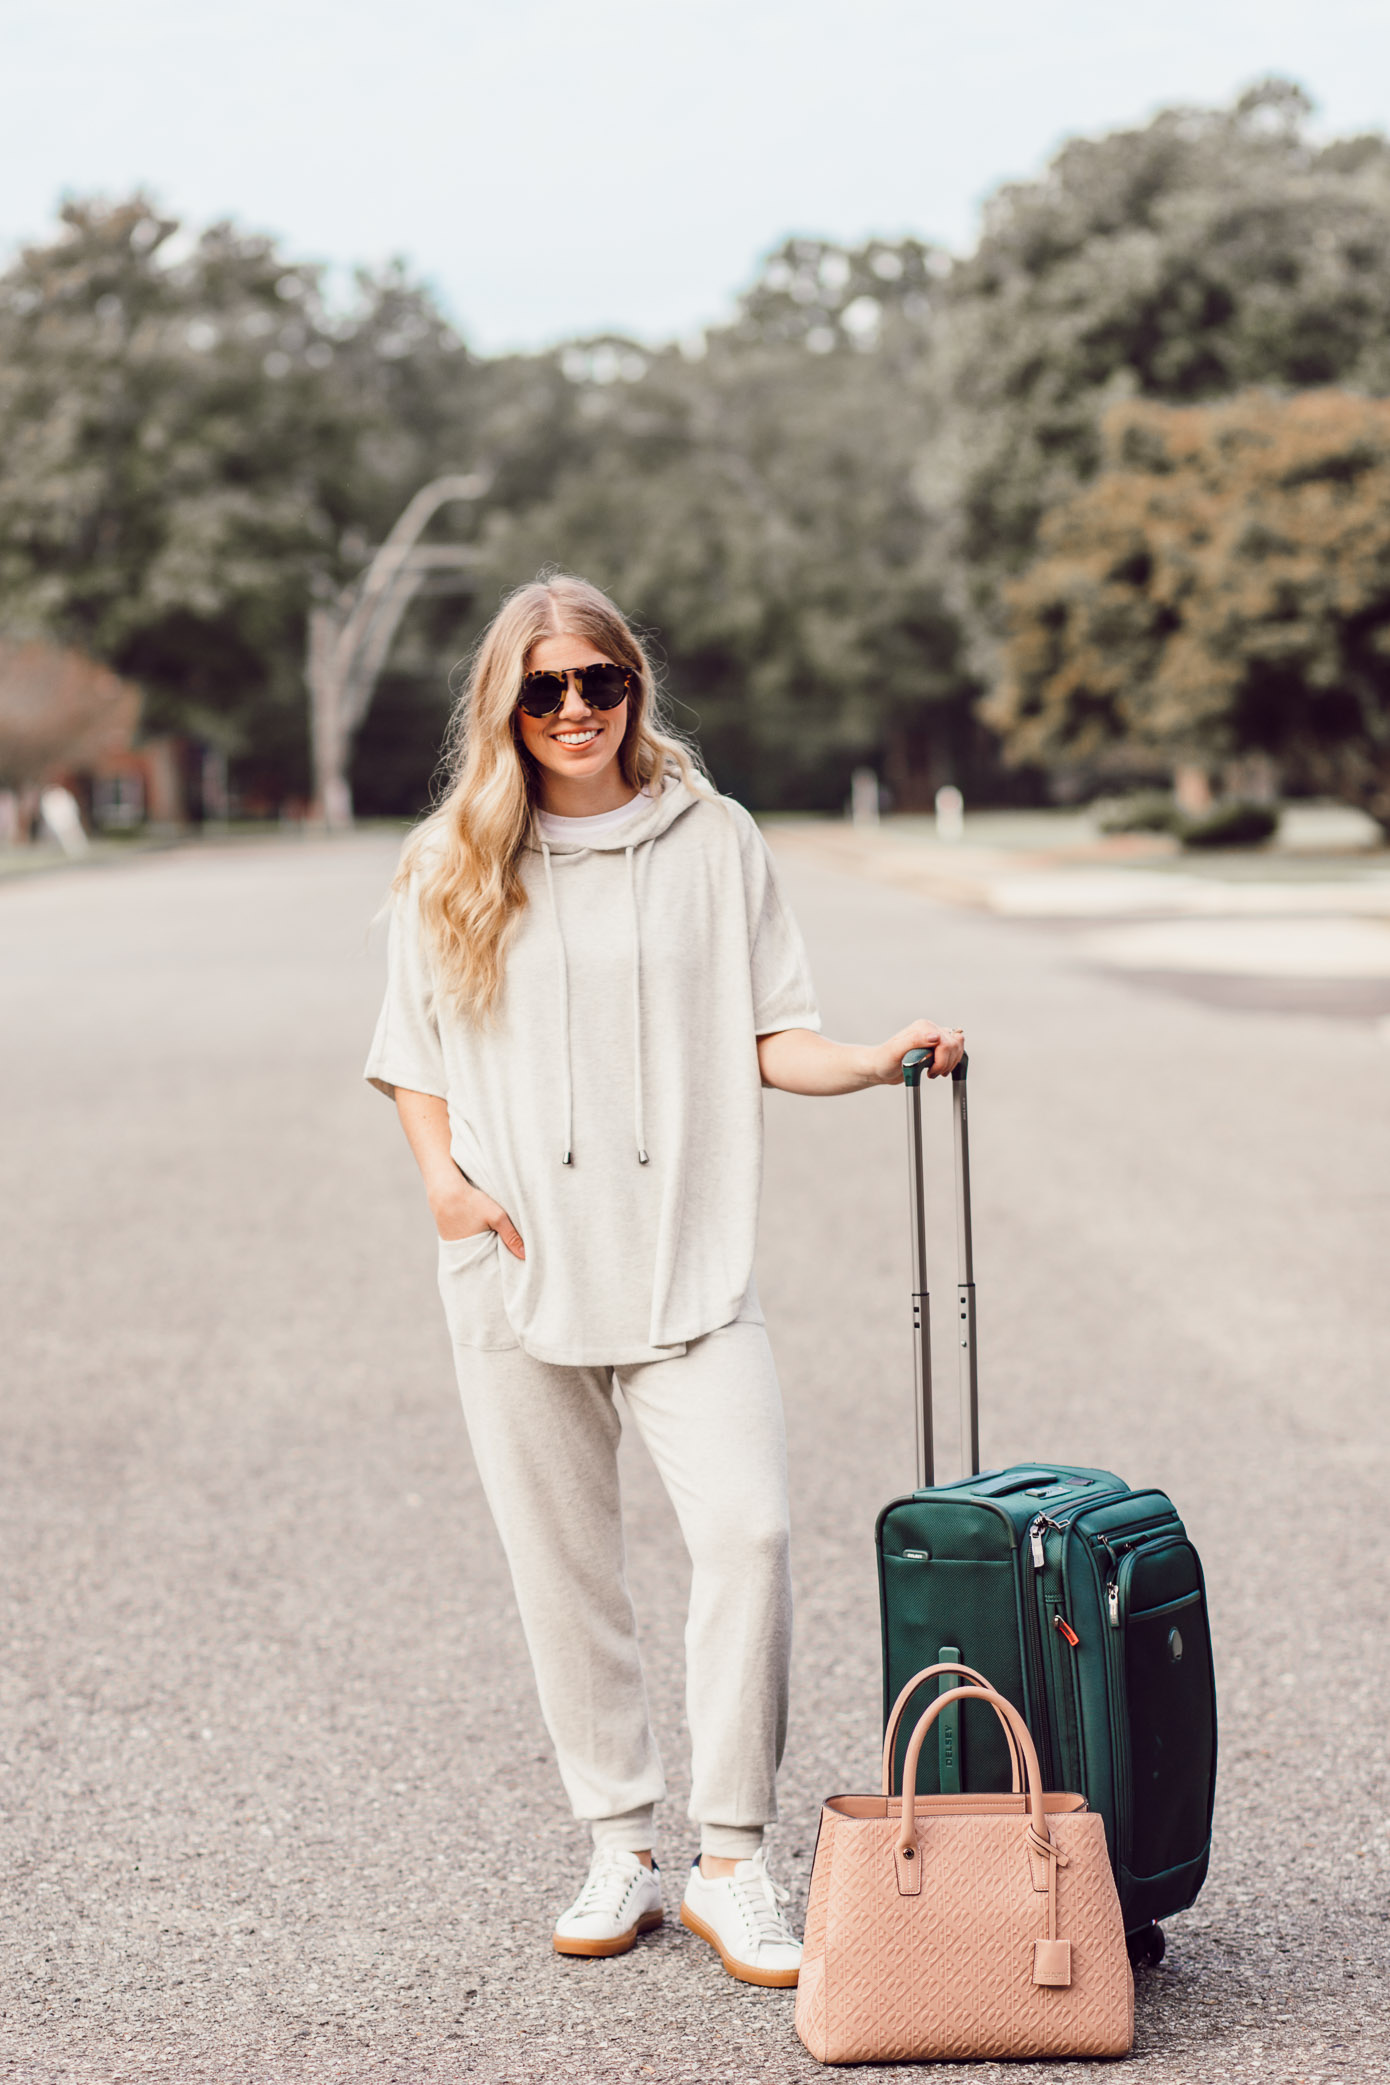 Cozy Fall Travel Style | What to Wear for Fall Travels featured on Louella Reese Blog